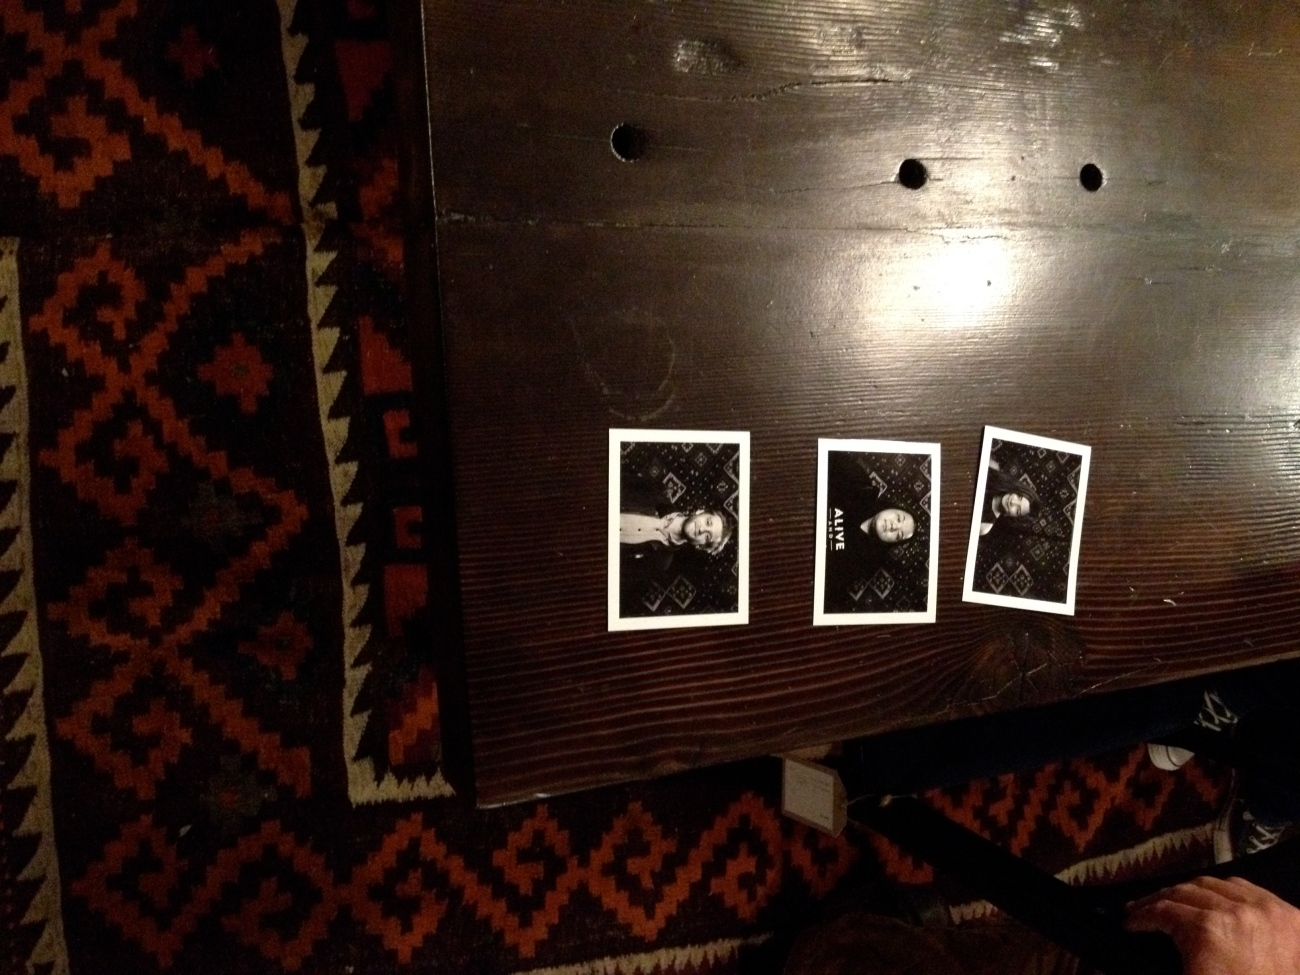 Black and White Poloroids